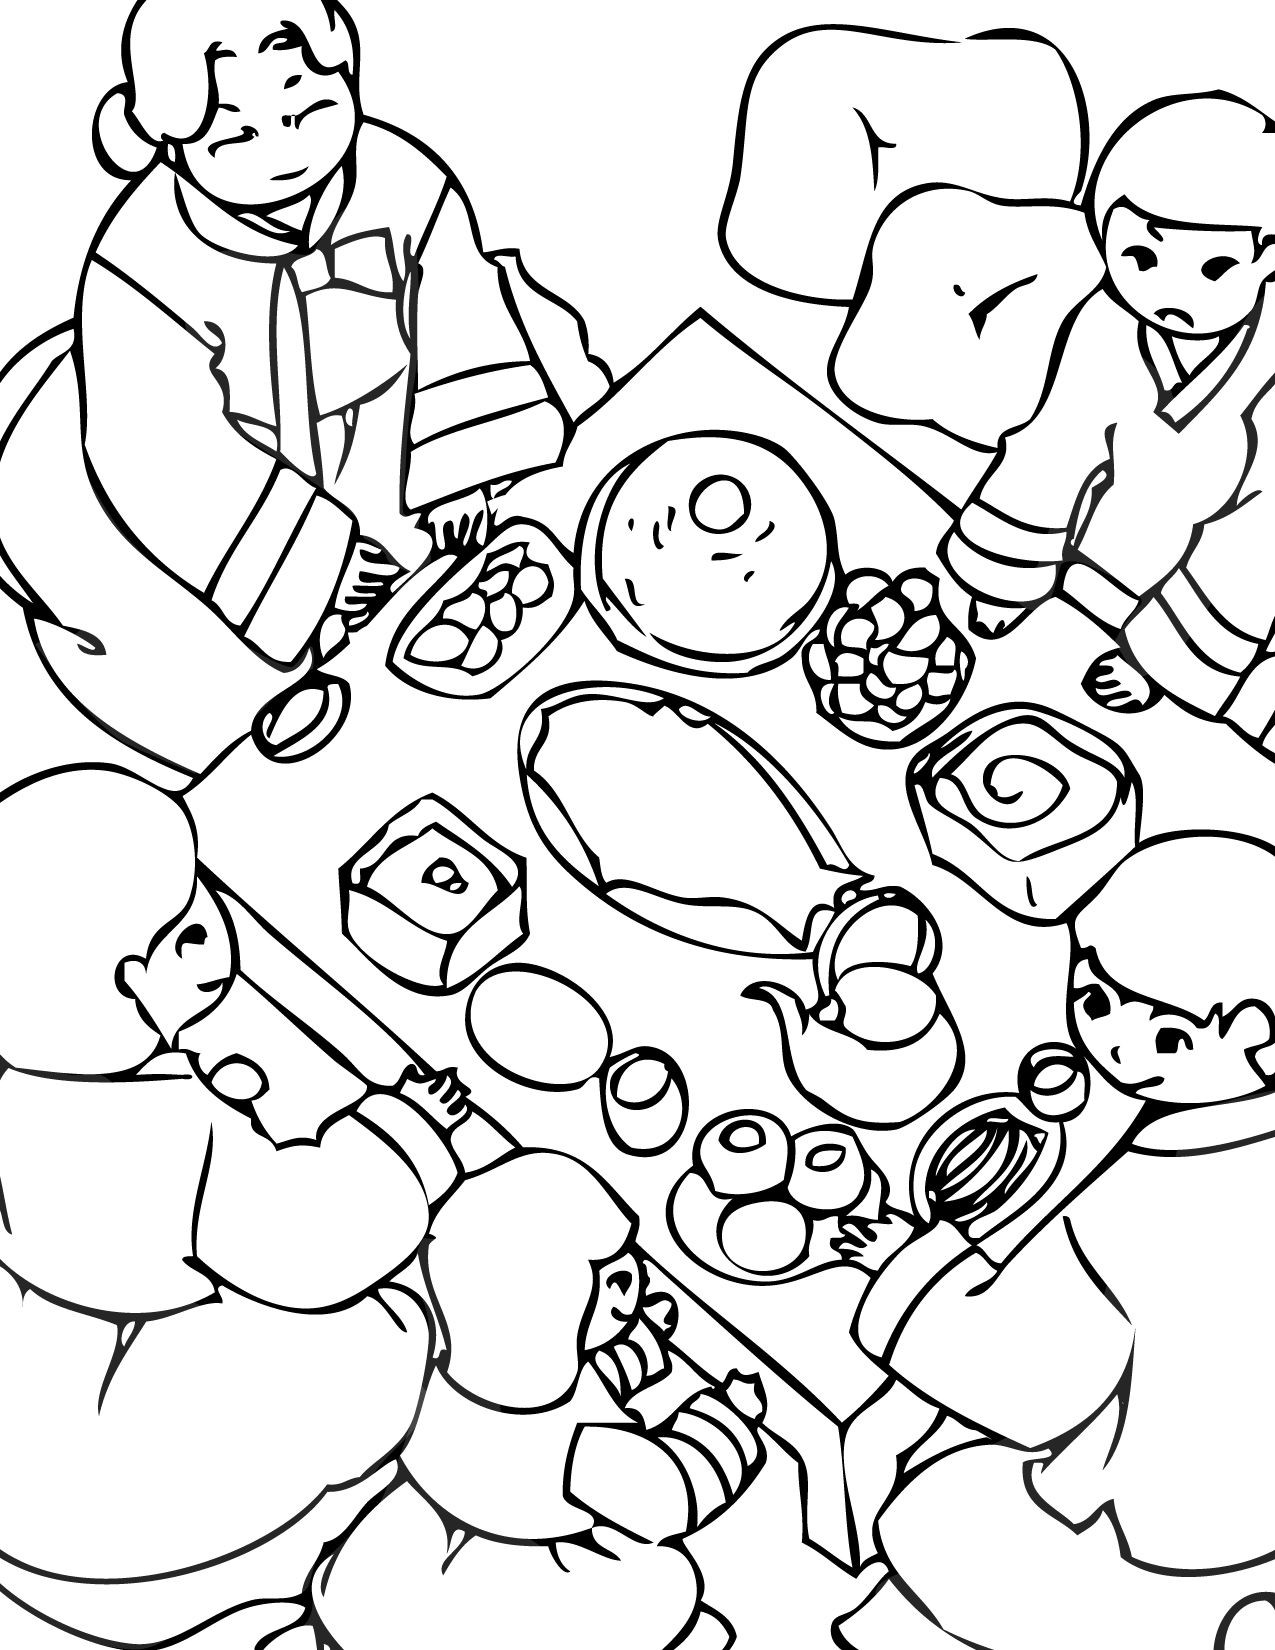 Korean Coloring Book  Korean Coloring Pages on Pinterest